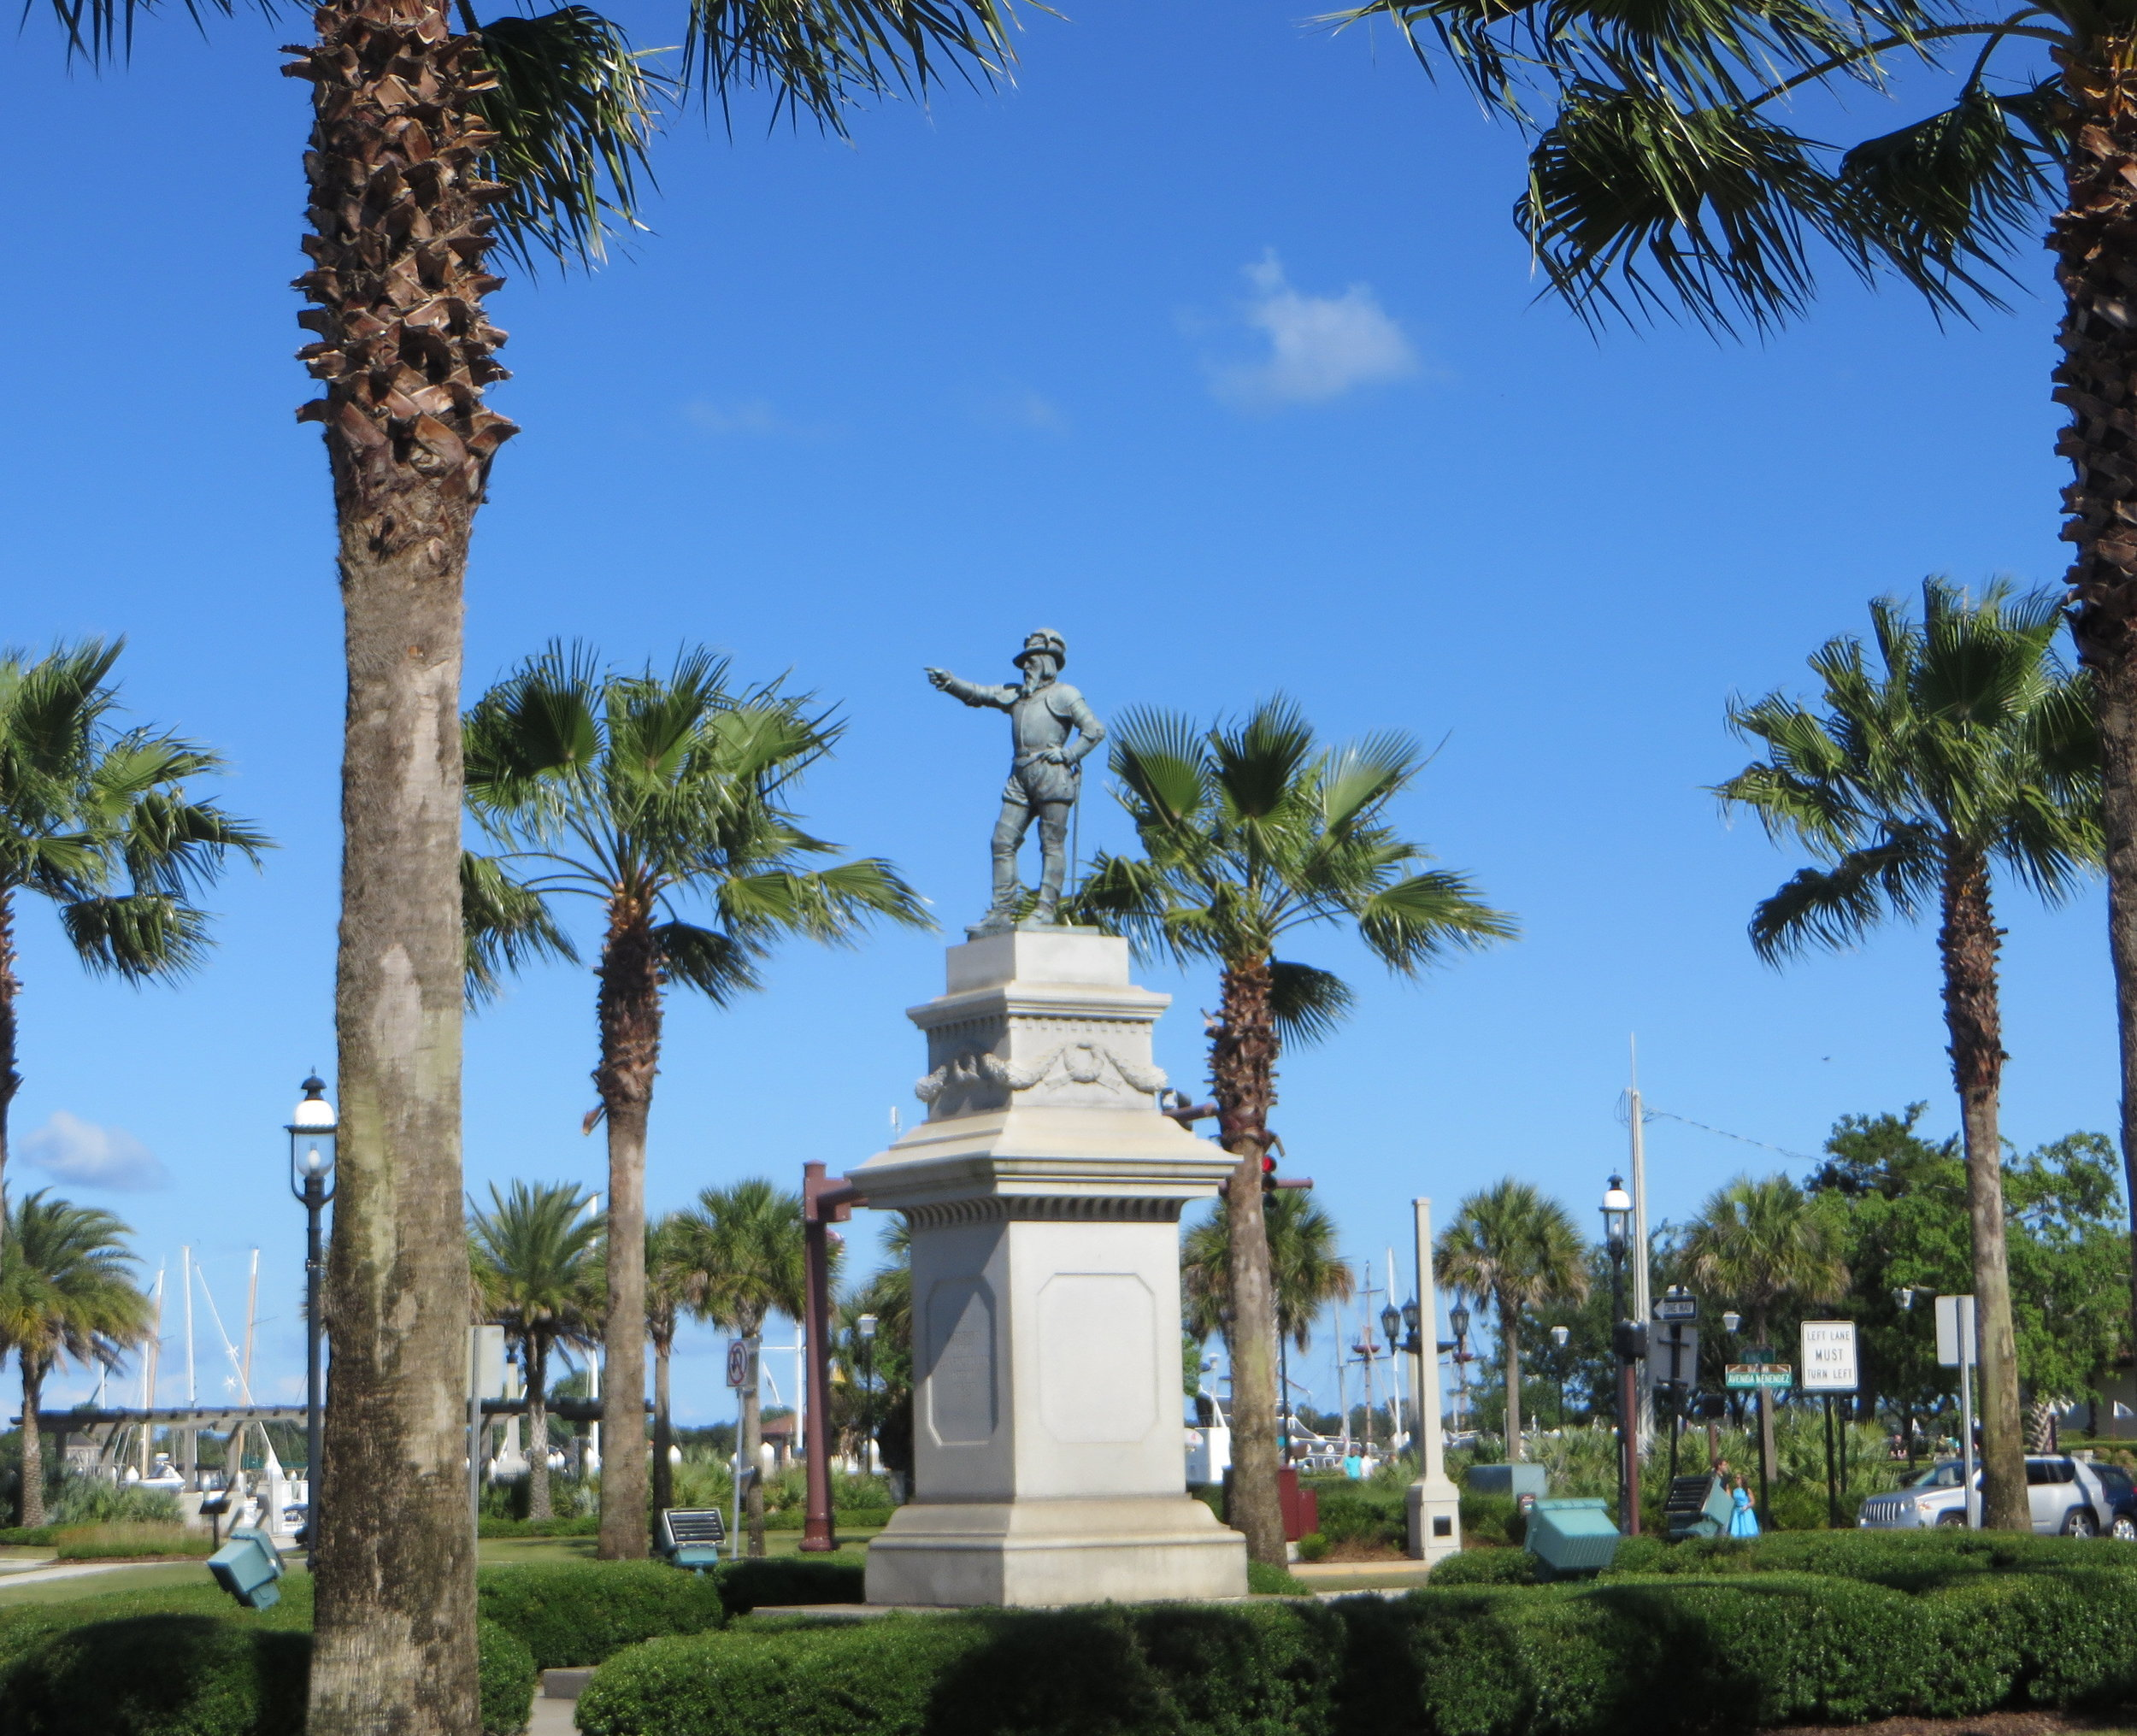 Ponce de Leon statue in old St Augustine